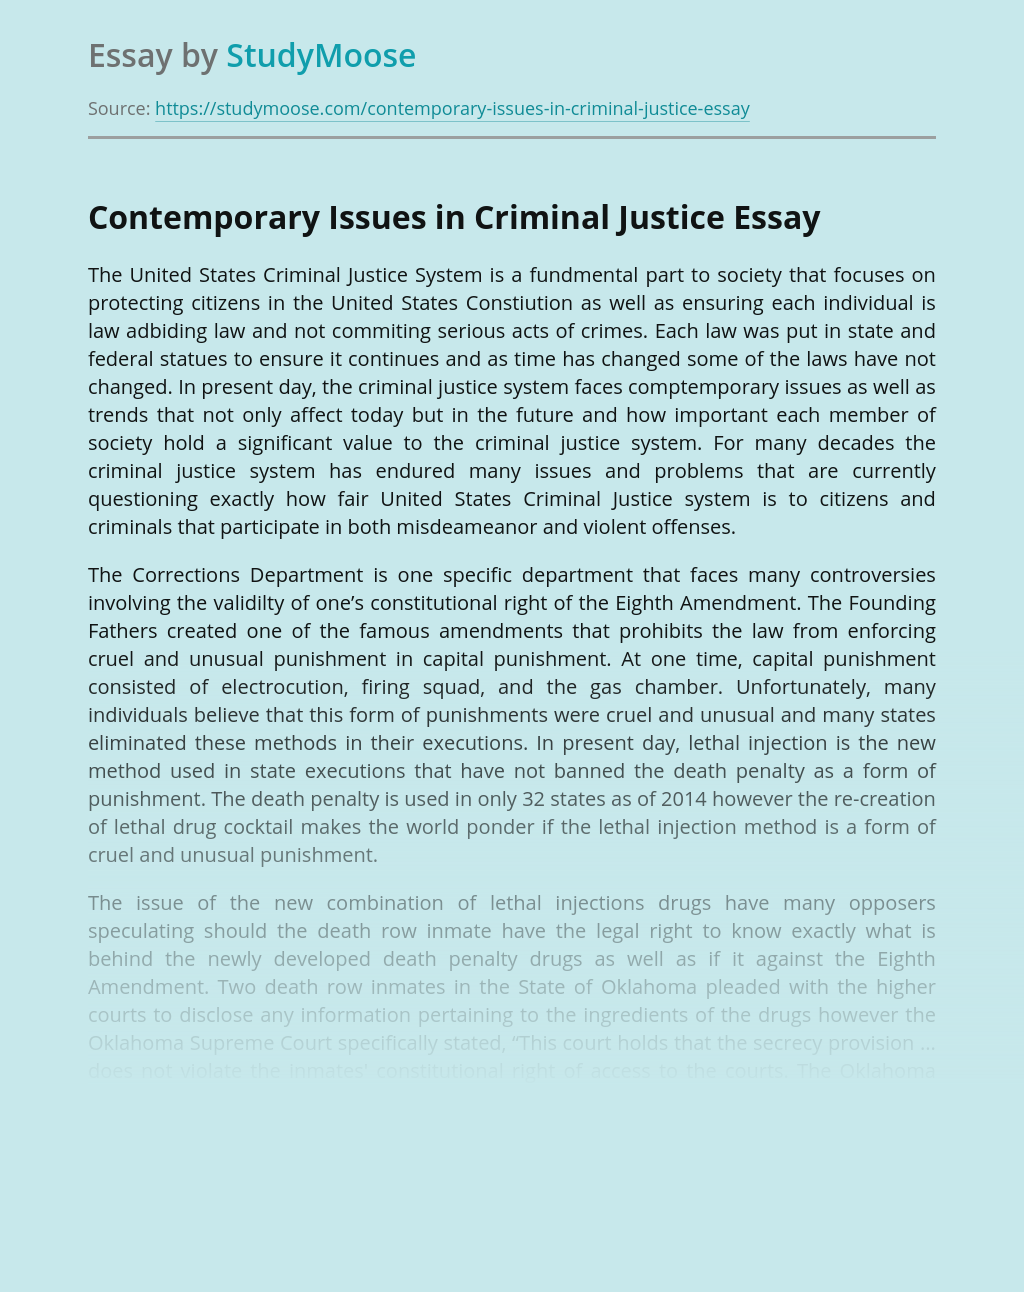 Contemporary Issues in Criminal Justice